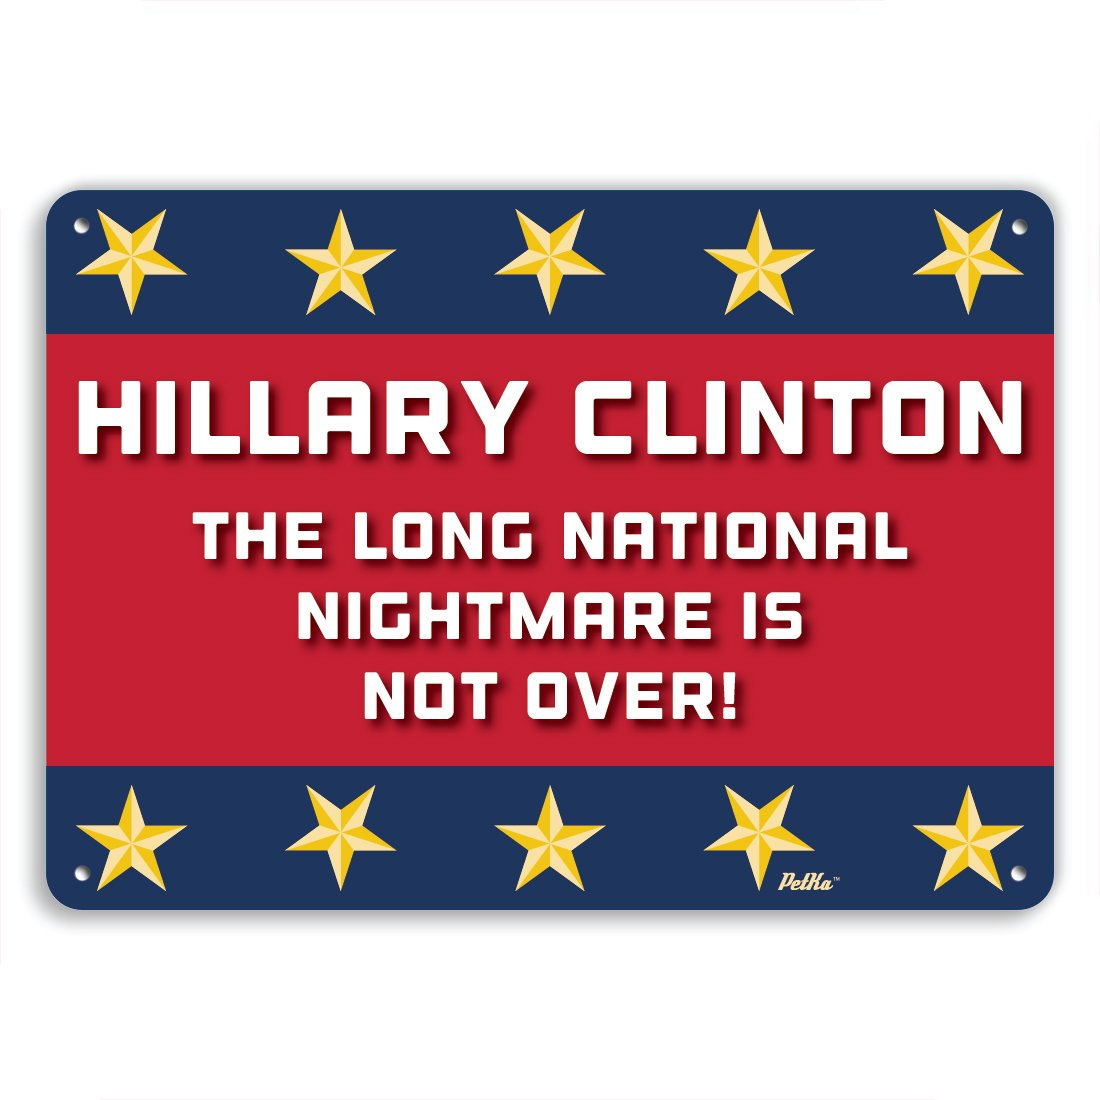 Red//White//Blue with Gold Stars PetKa Signs and Graphics PKHC-0013-NA/_10x7Hillary Clinton the long national nightmare is not over 10 x 7 Aluminum Sign